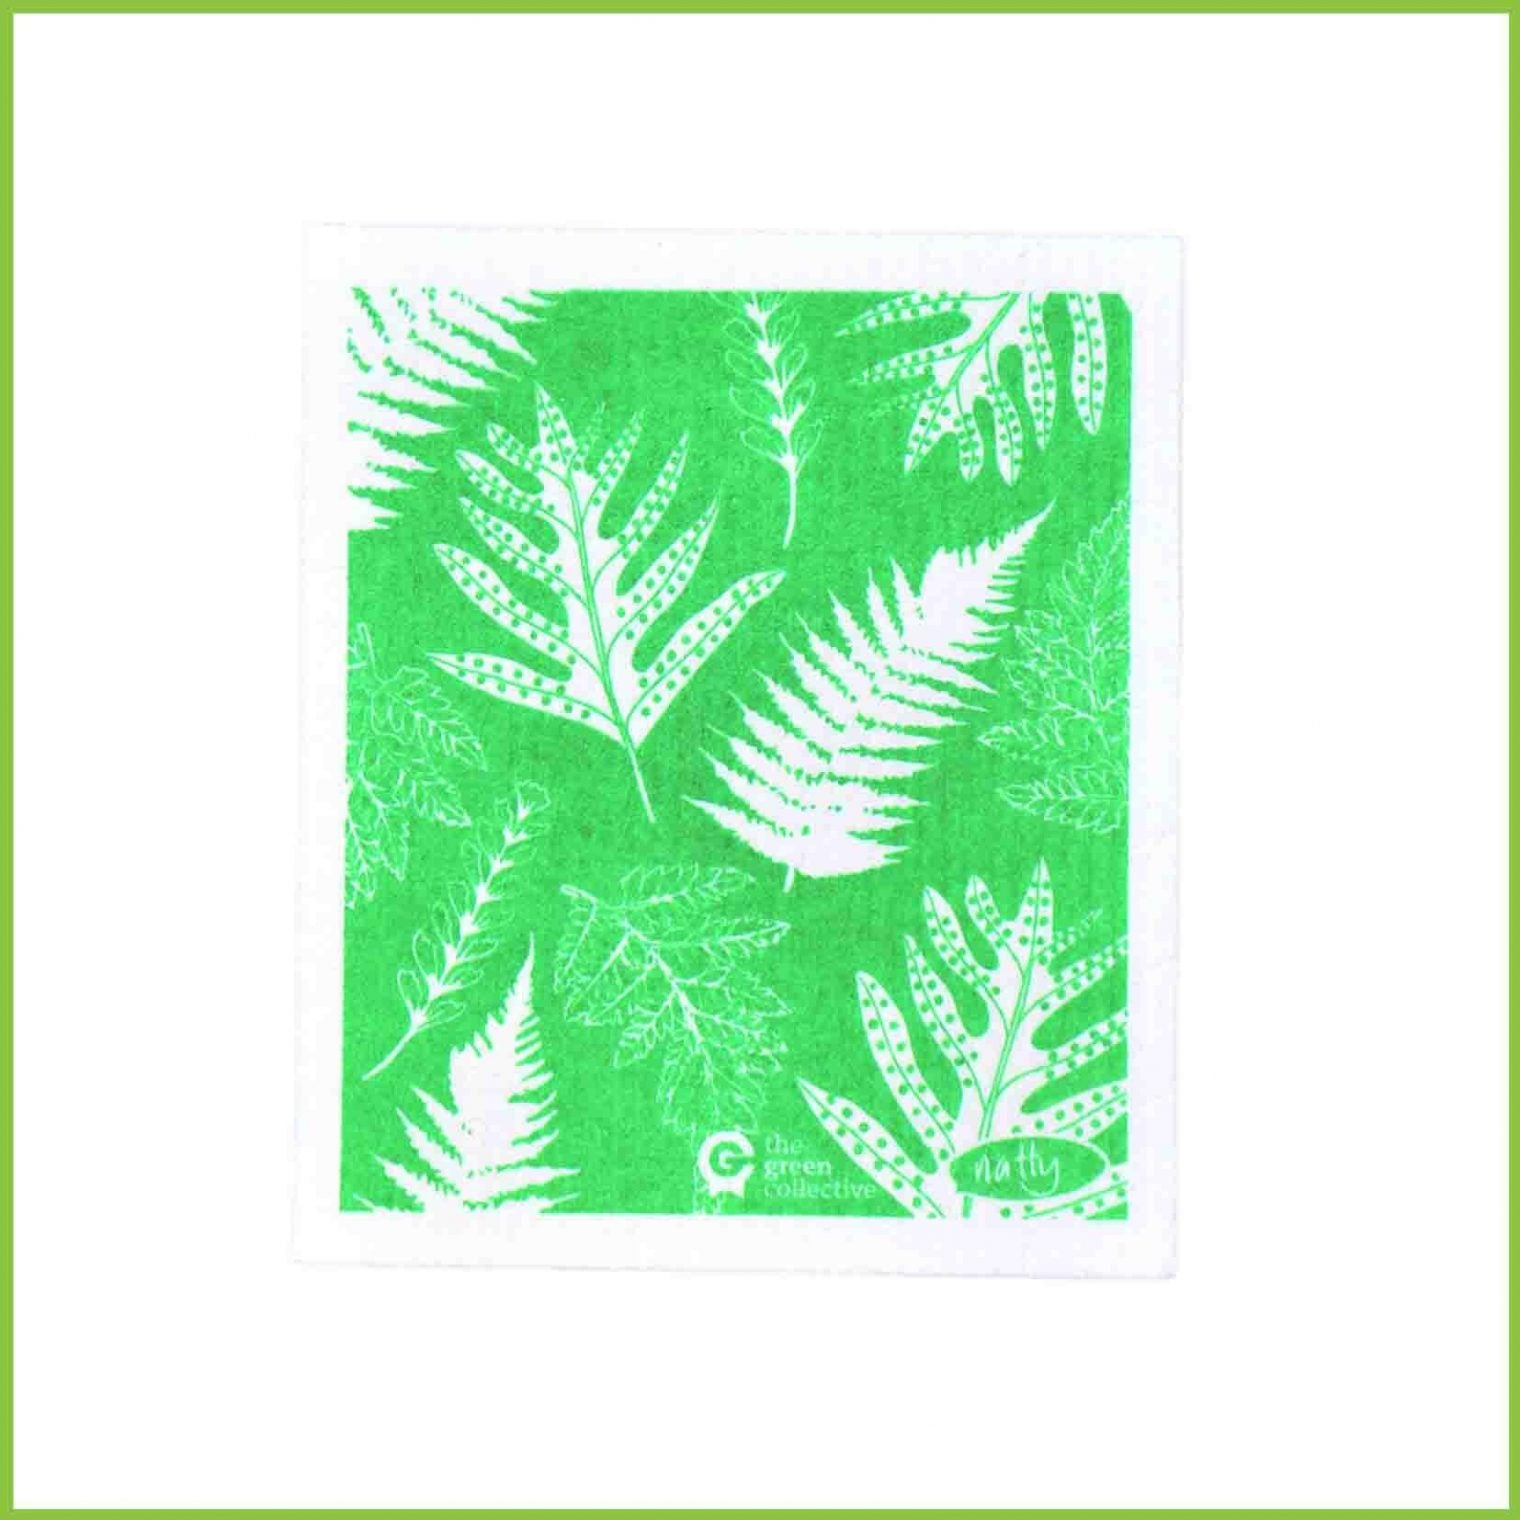 A Spruce cloth from the green collective with a fern design.